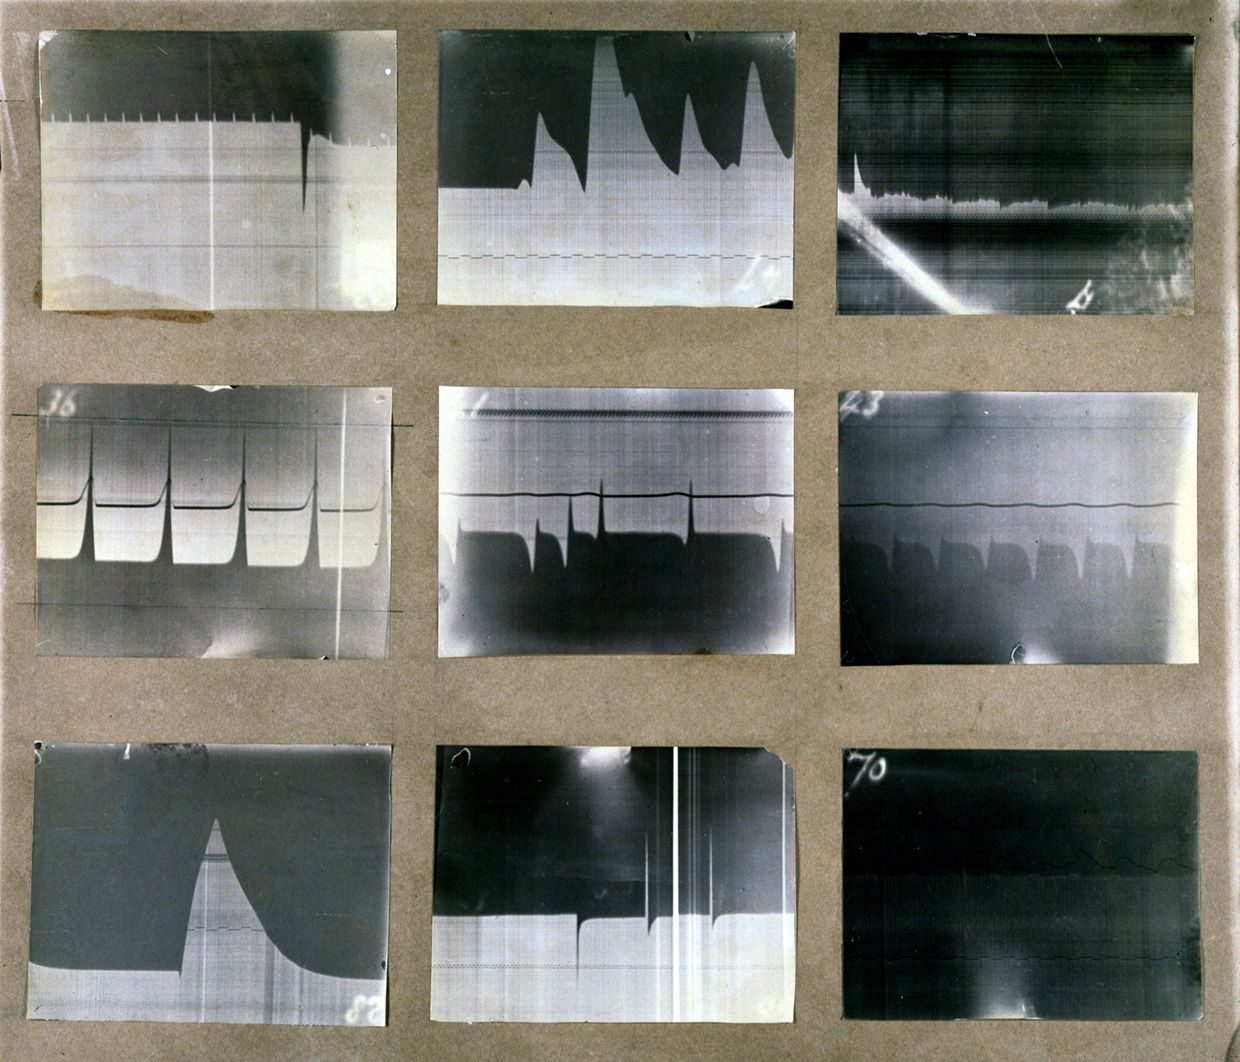 Photographs taken by physiologist Augustus Waller during the cardiology research he carried out at St Mary's Medical School, London, between 1884 and 1903.